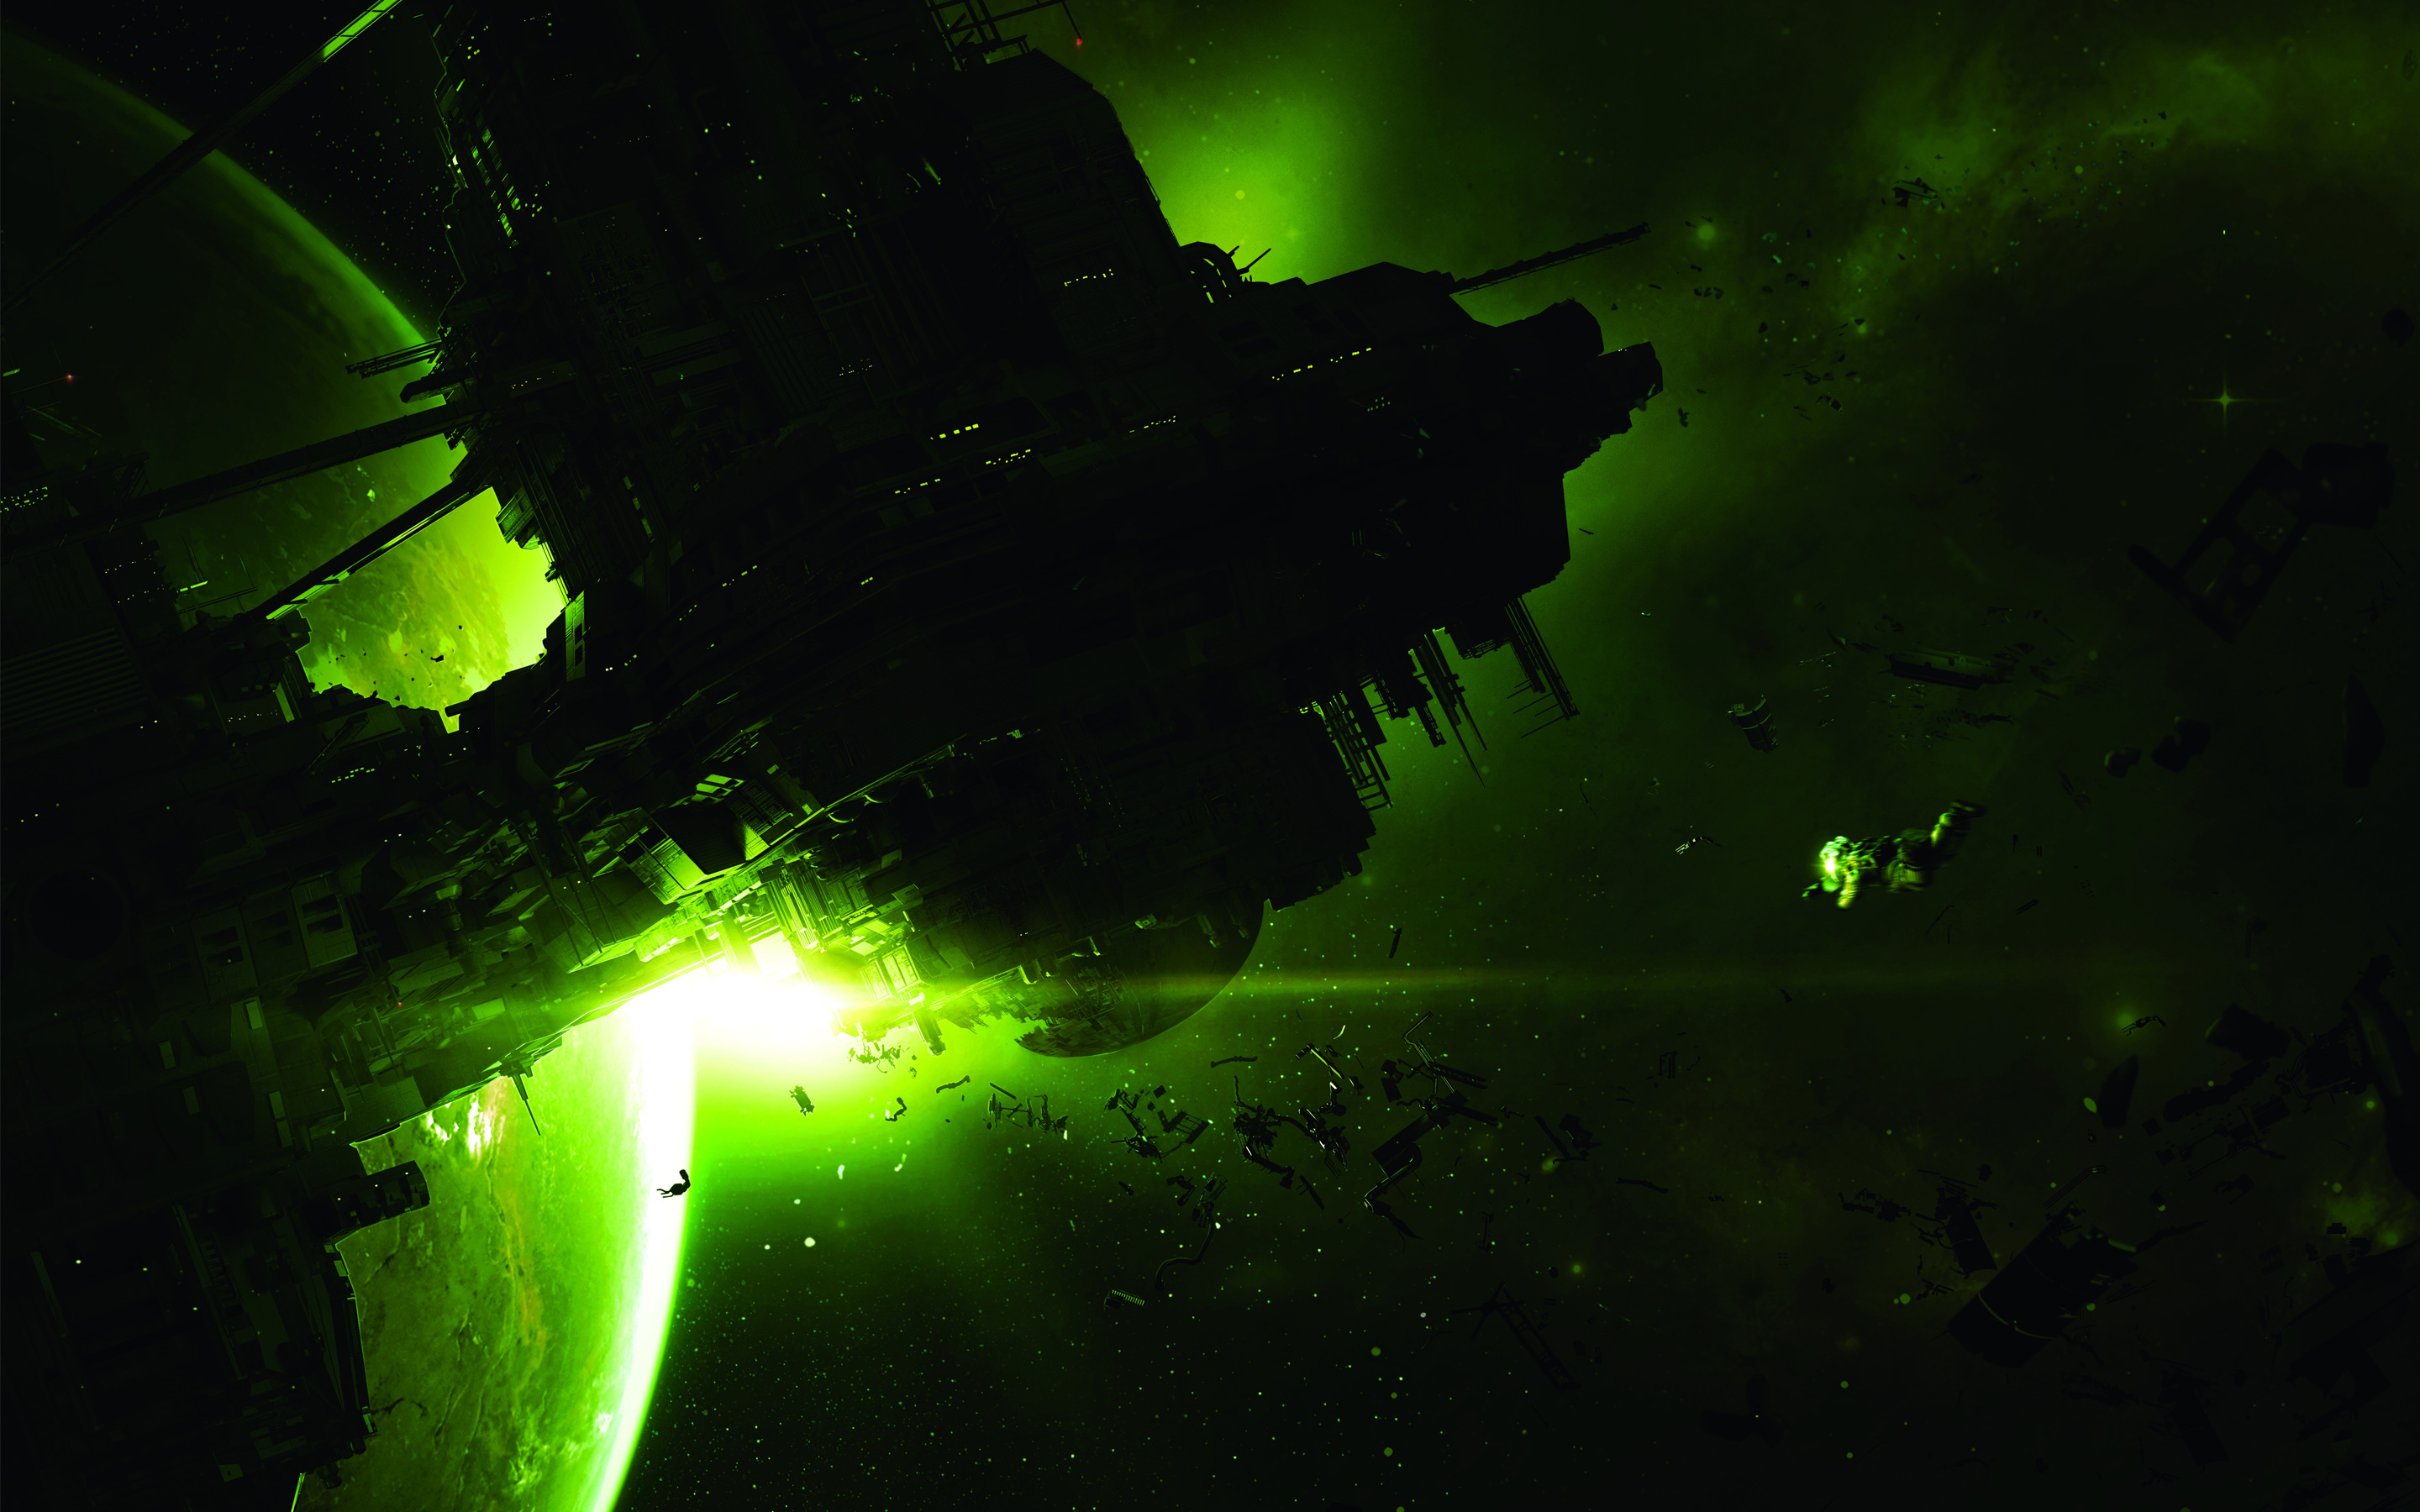 alien isolation wallpaper